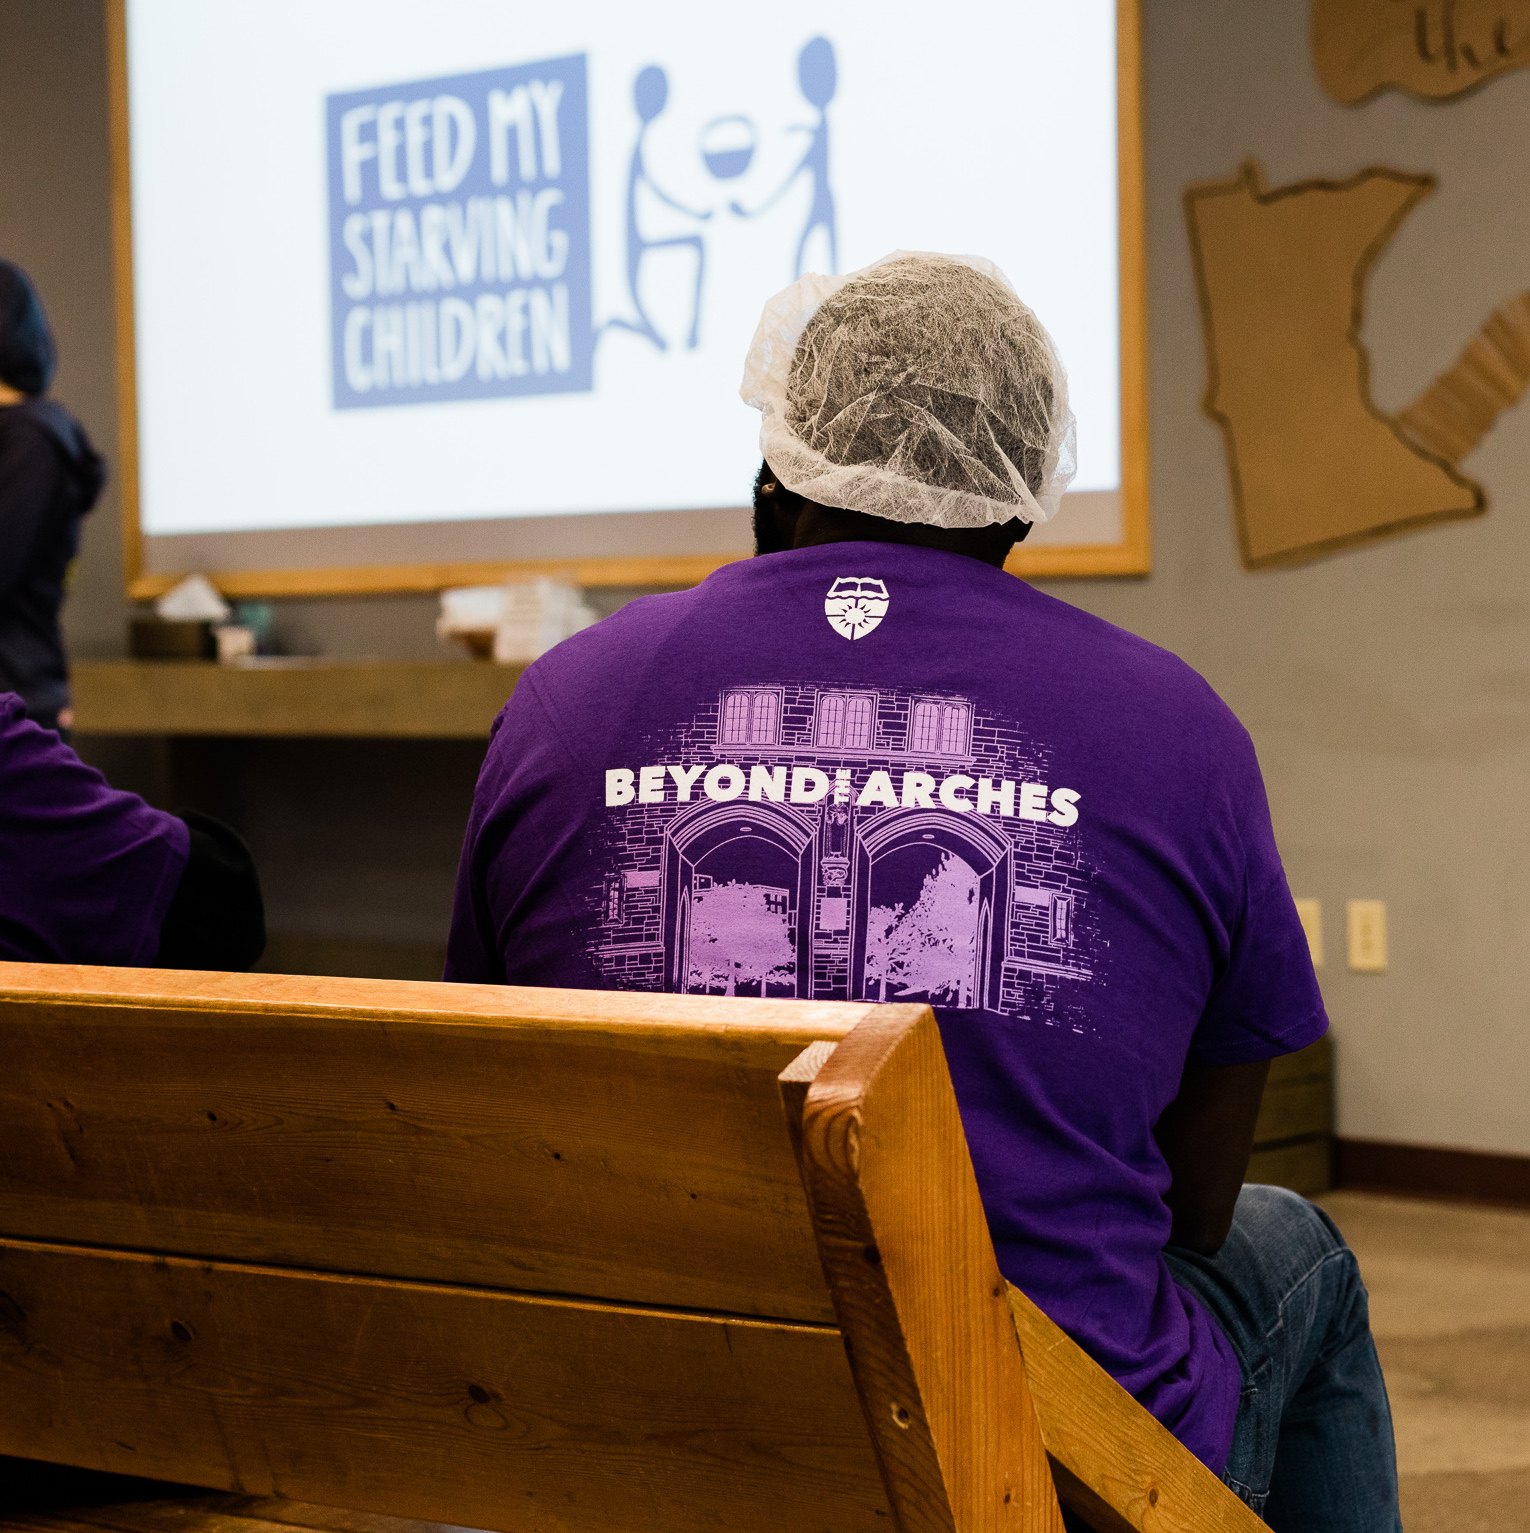 a 3M employee watches a demonstration at a Feed My Starving Children event